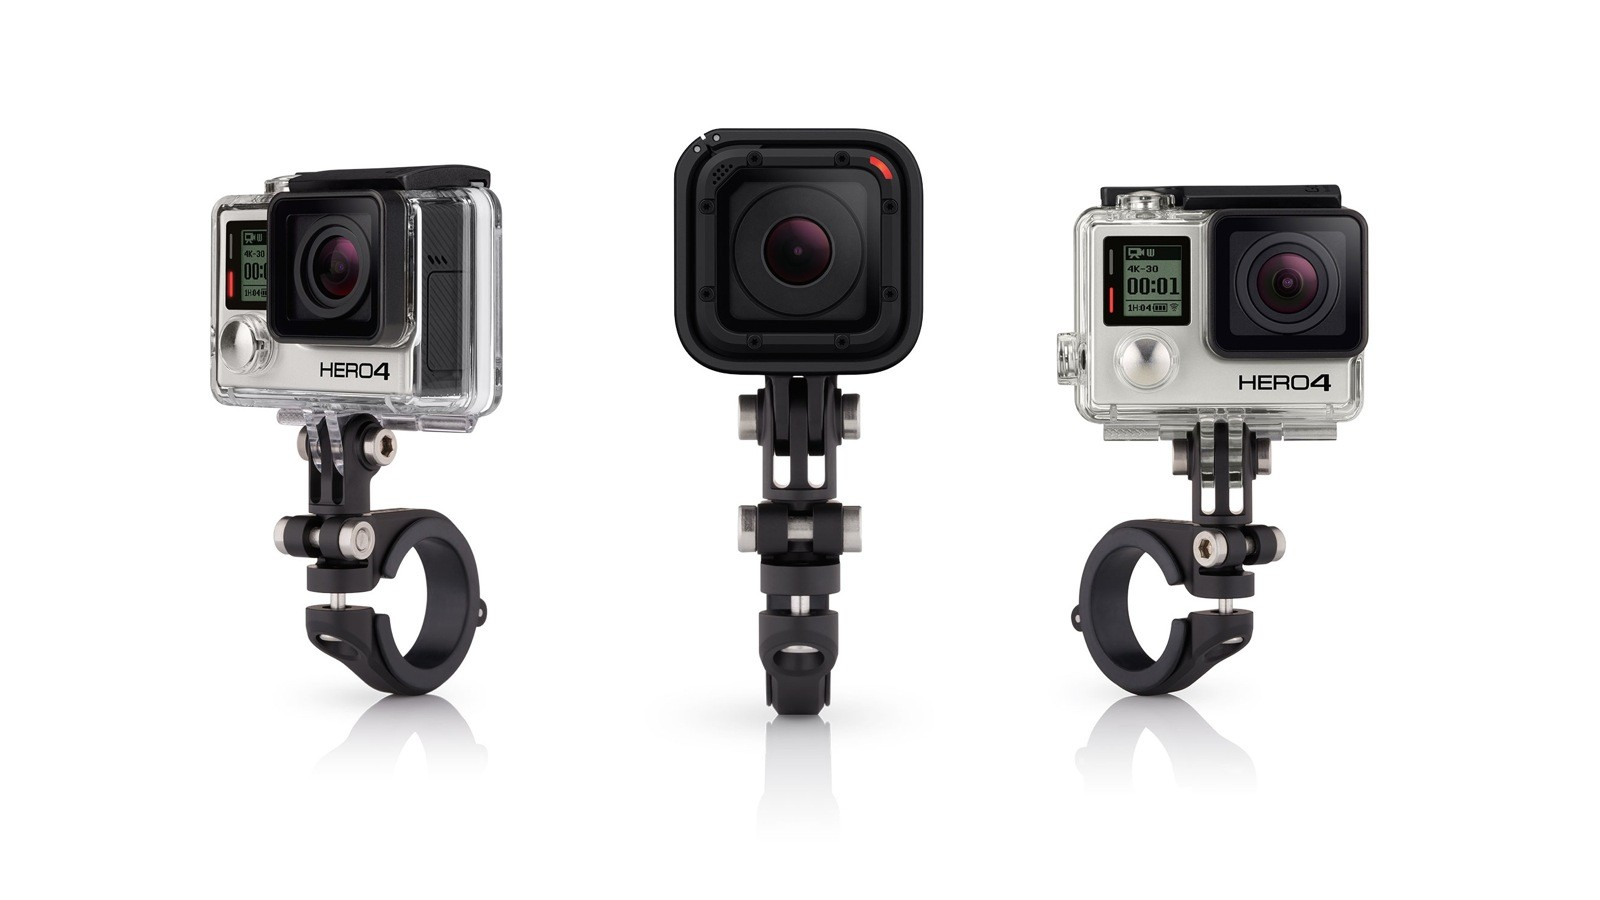 The new GoPro Pro Handlebar/Seatpost mount is alloy and has an effective mounting diameter between 22.2mm and 35mm